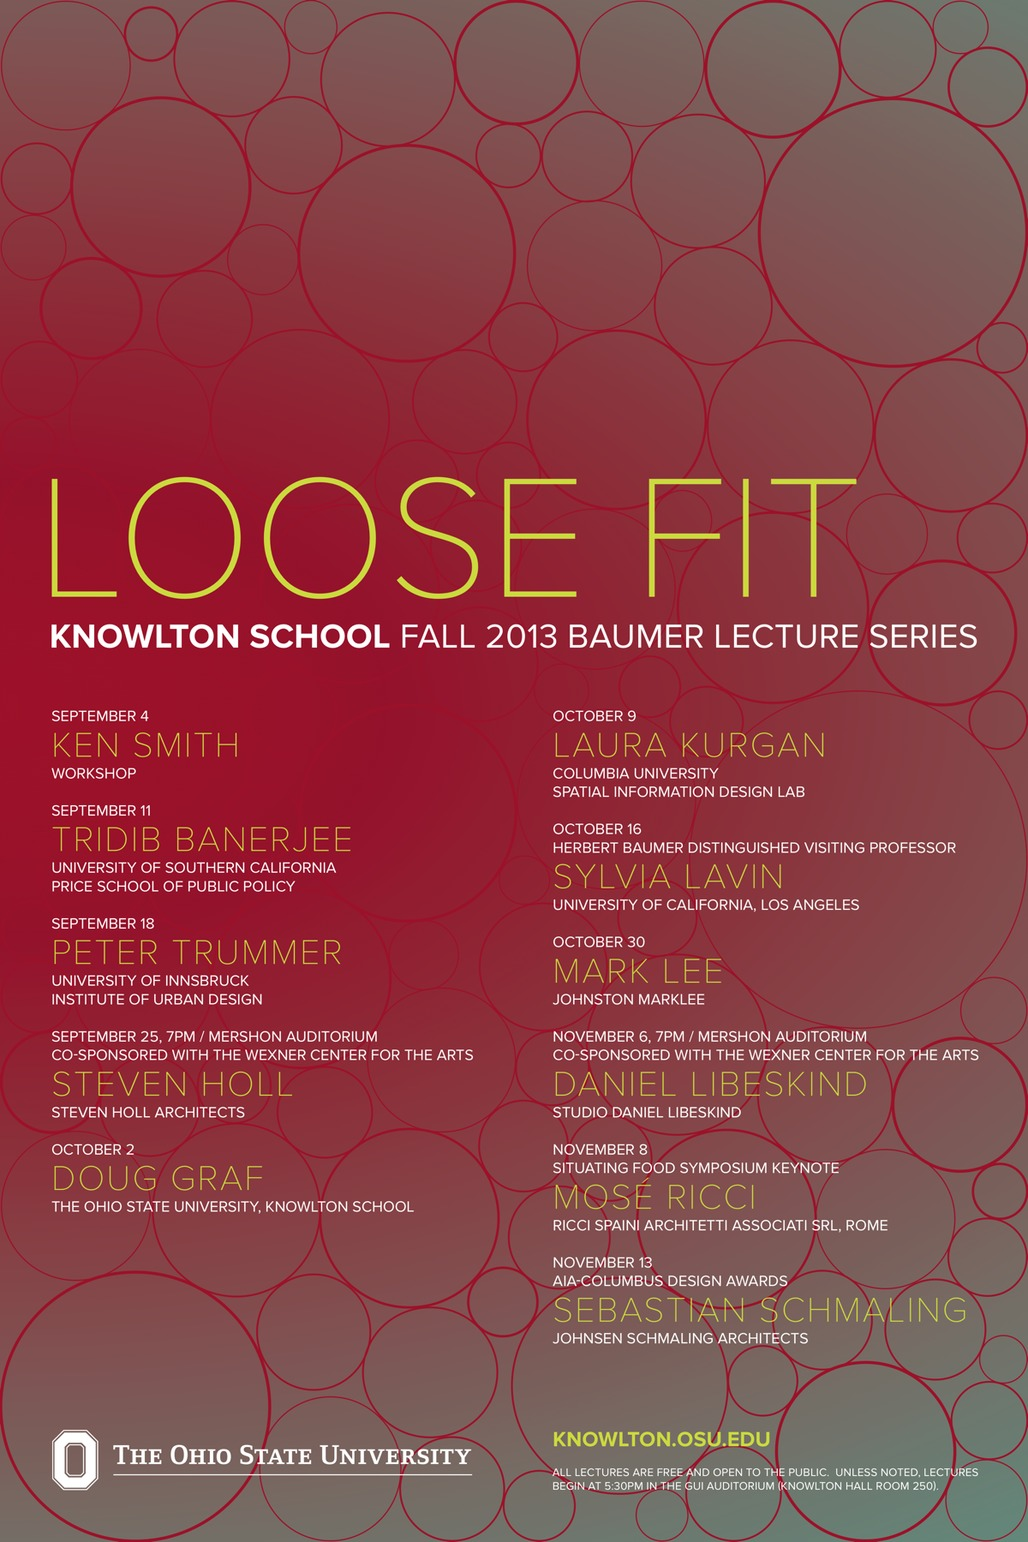 Poster for the Loose Fit lecture series at the Knowlton School of Architecture at Ohio State University. Image from knowlton.osu.edu.